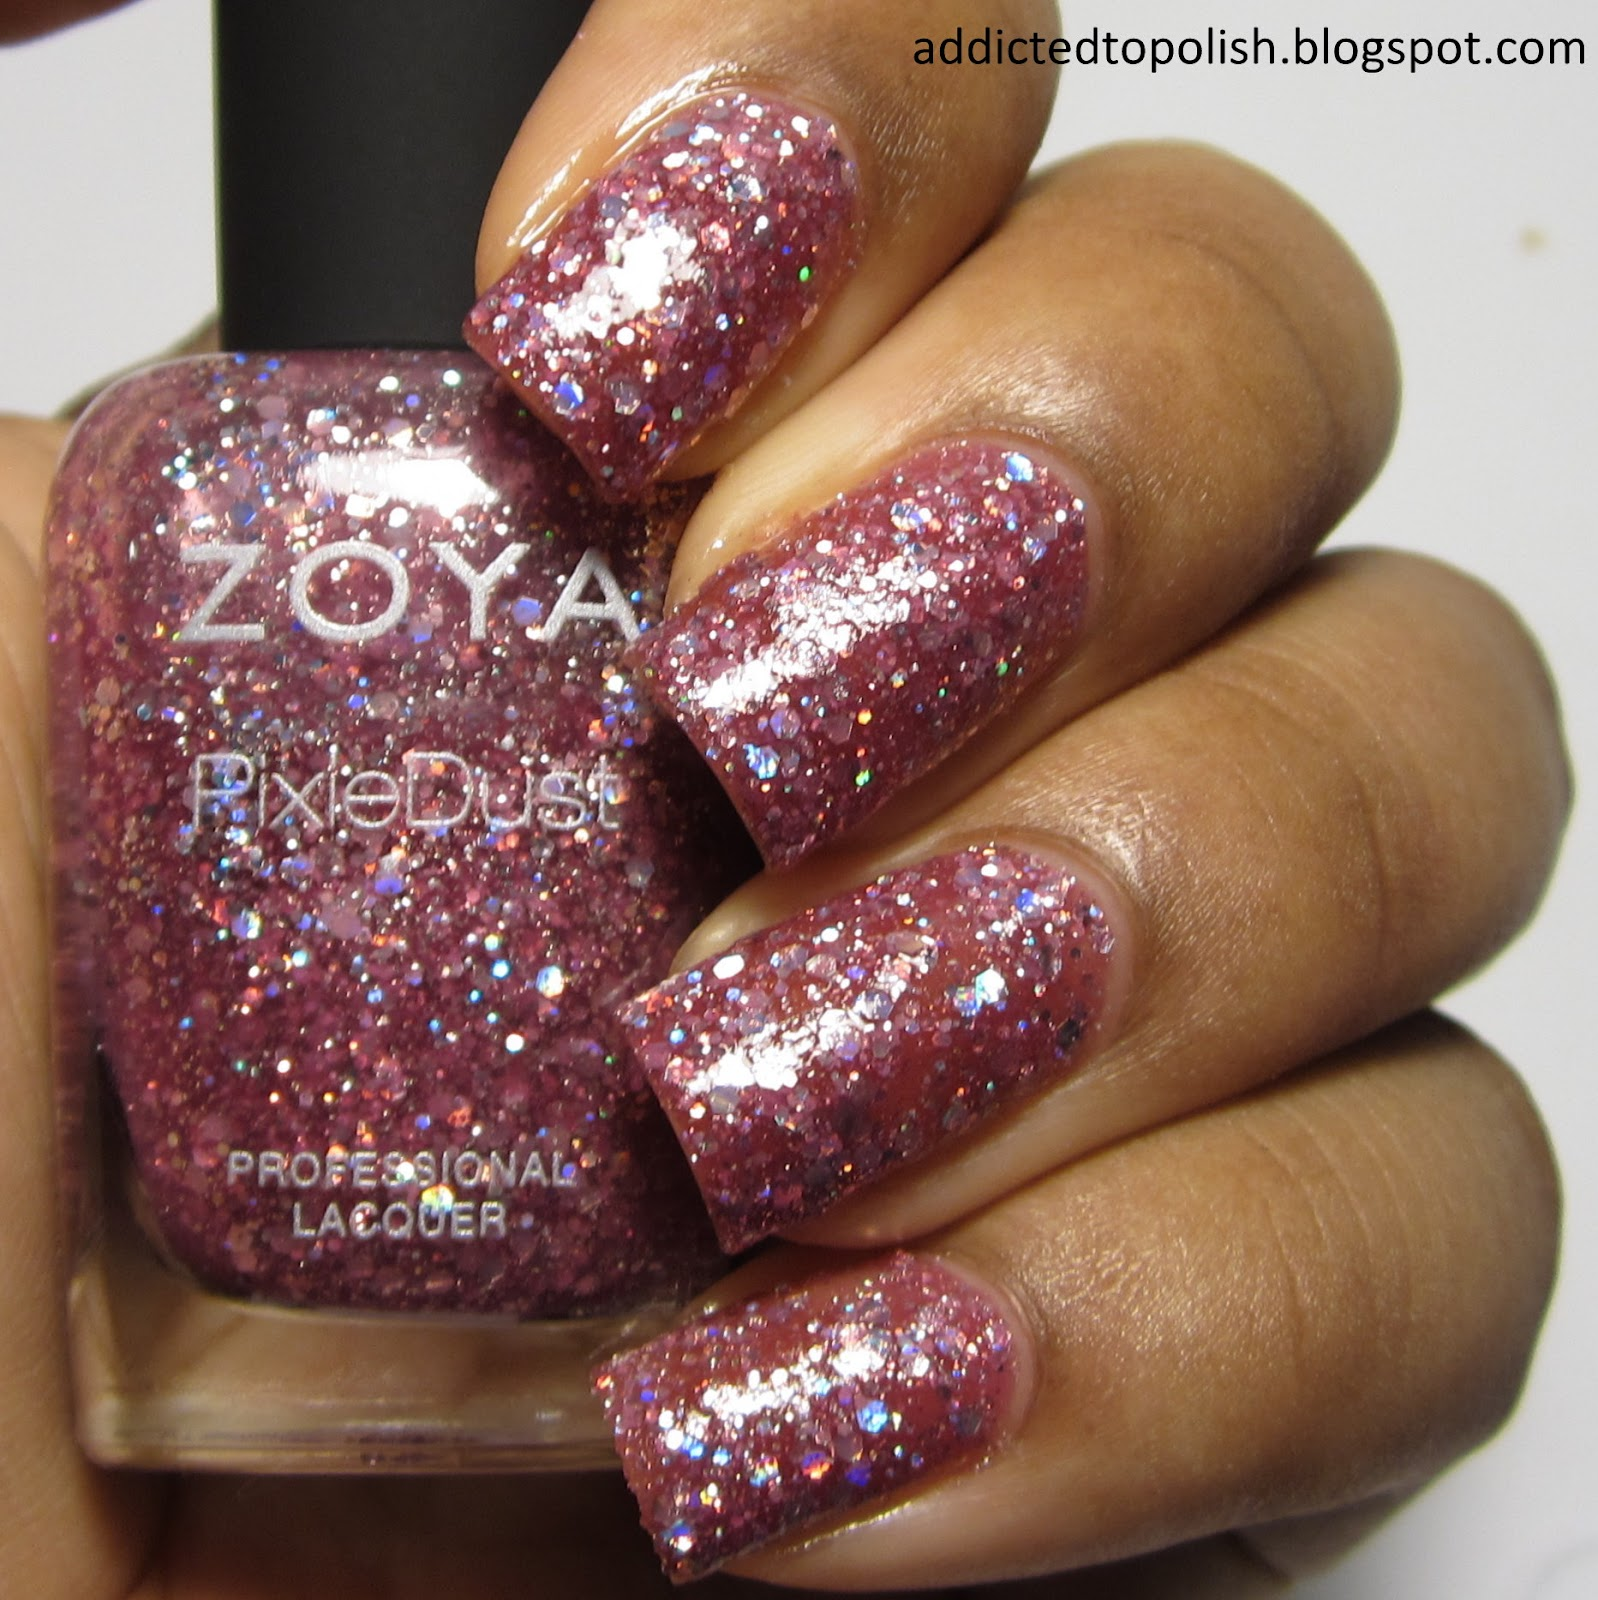 Zoya Arlo Magical PixieDust with Topcoat